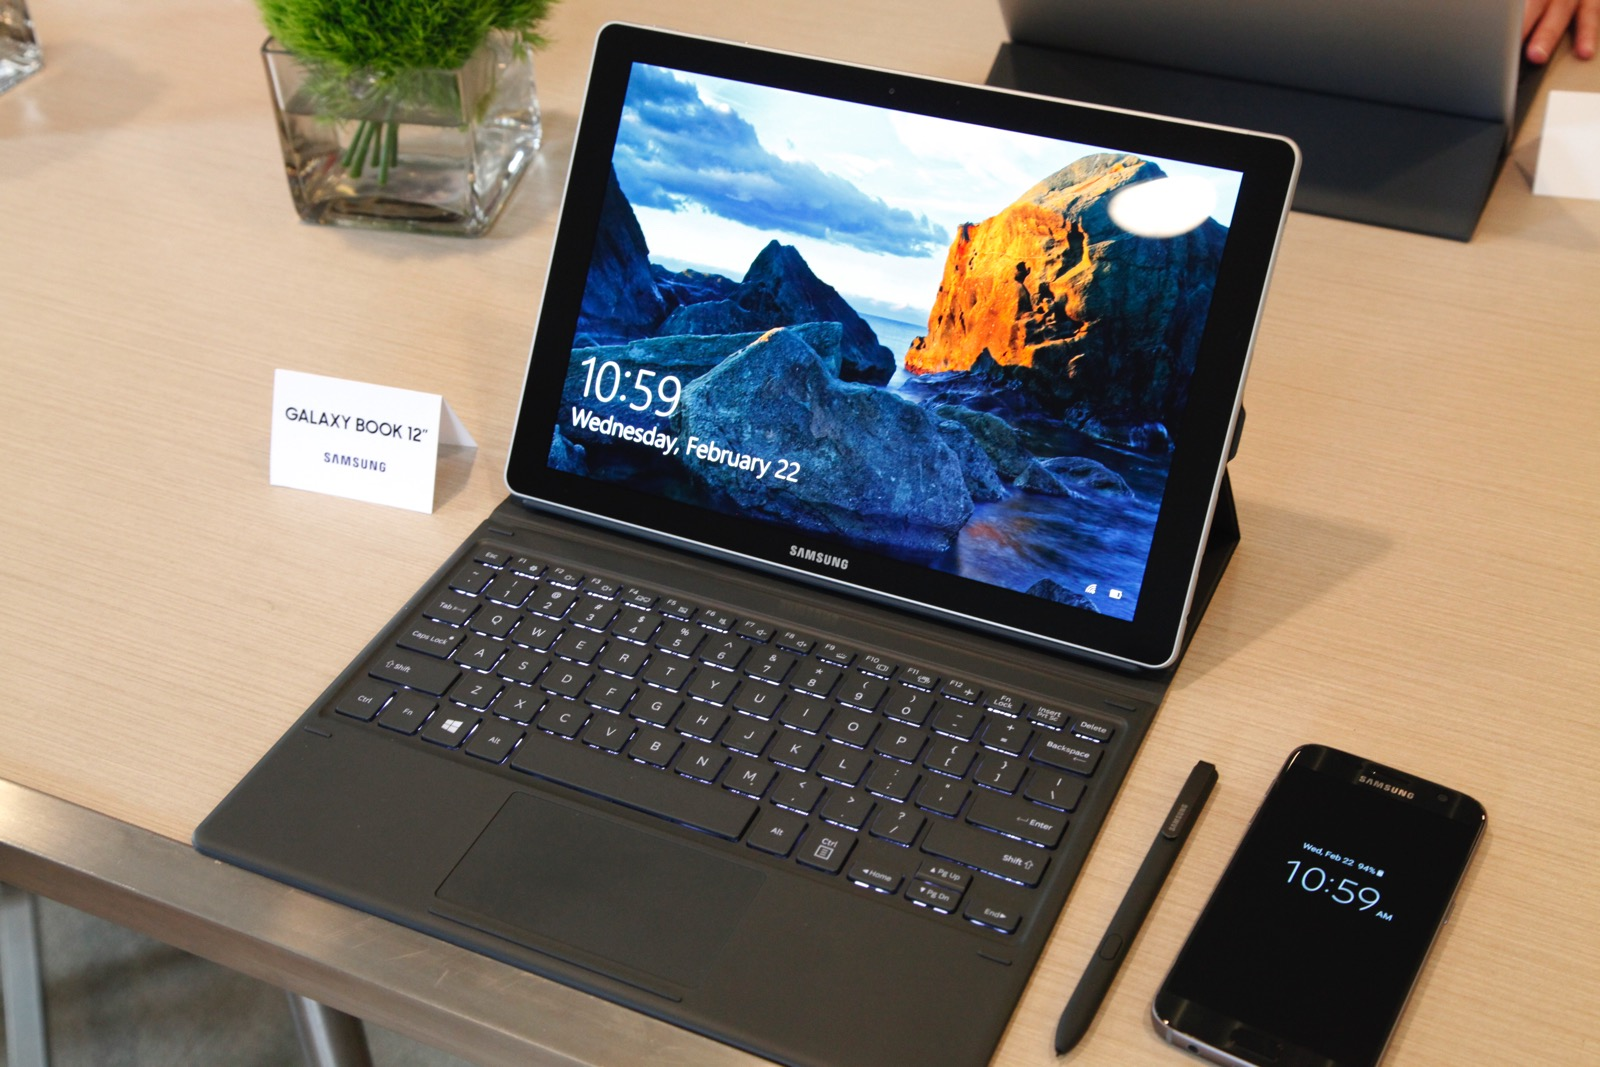 Galaxy Book 12 Price and Release Date